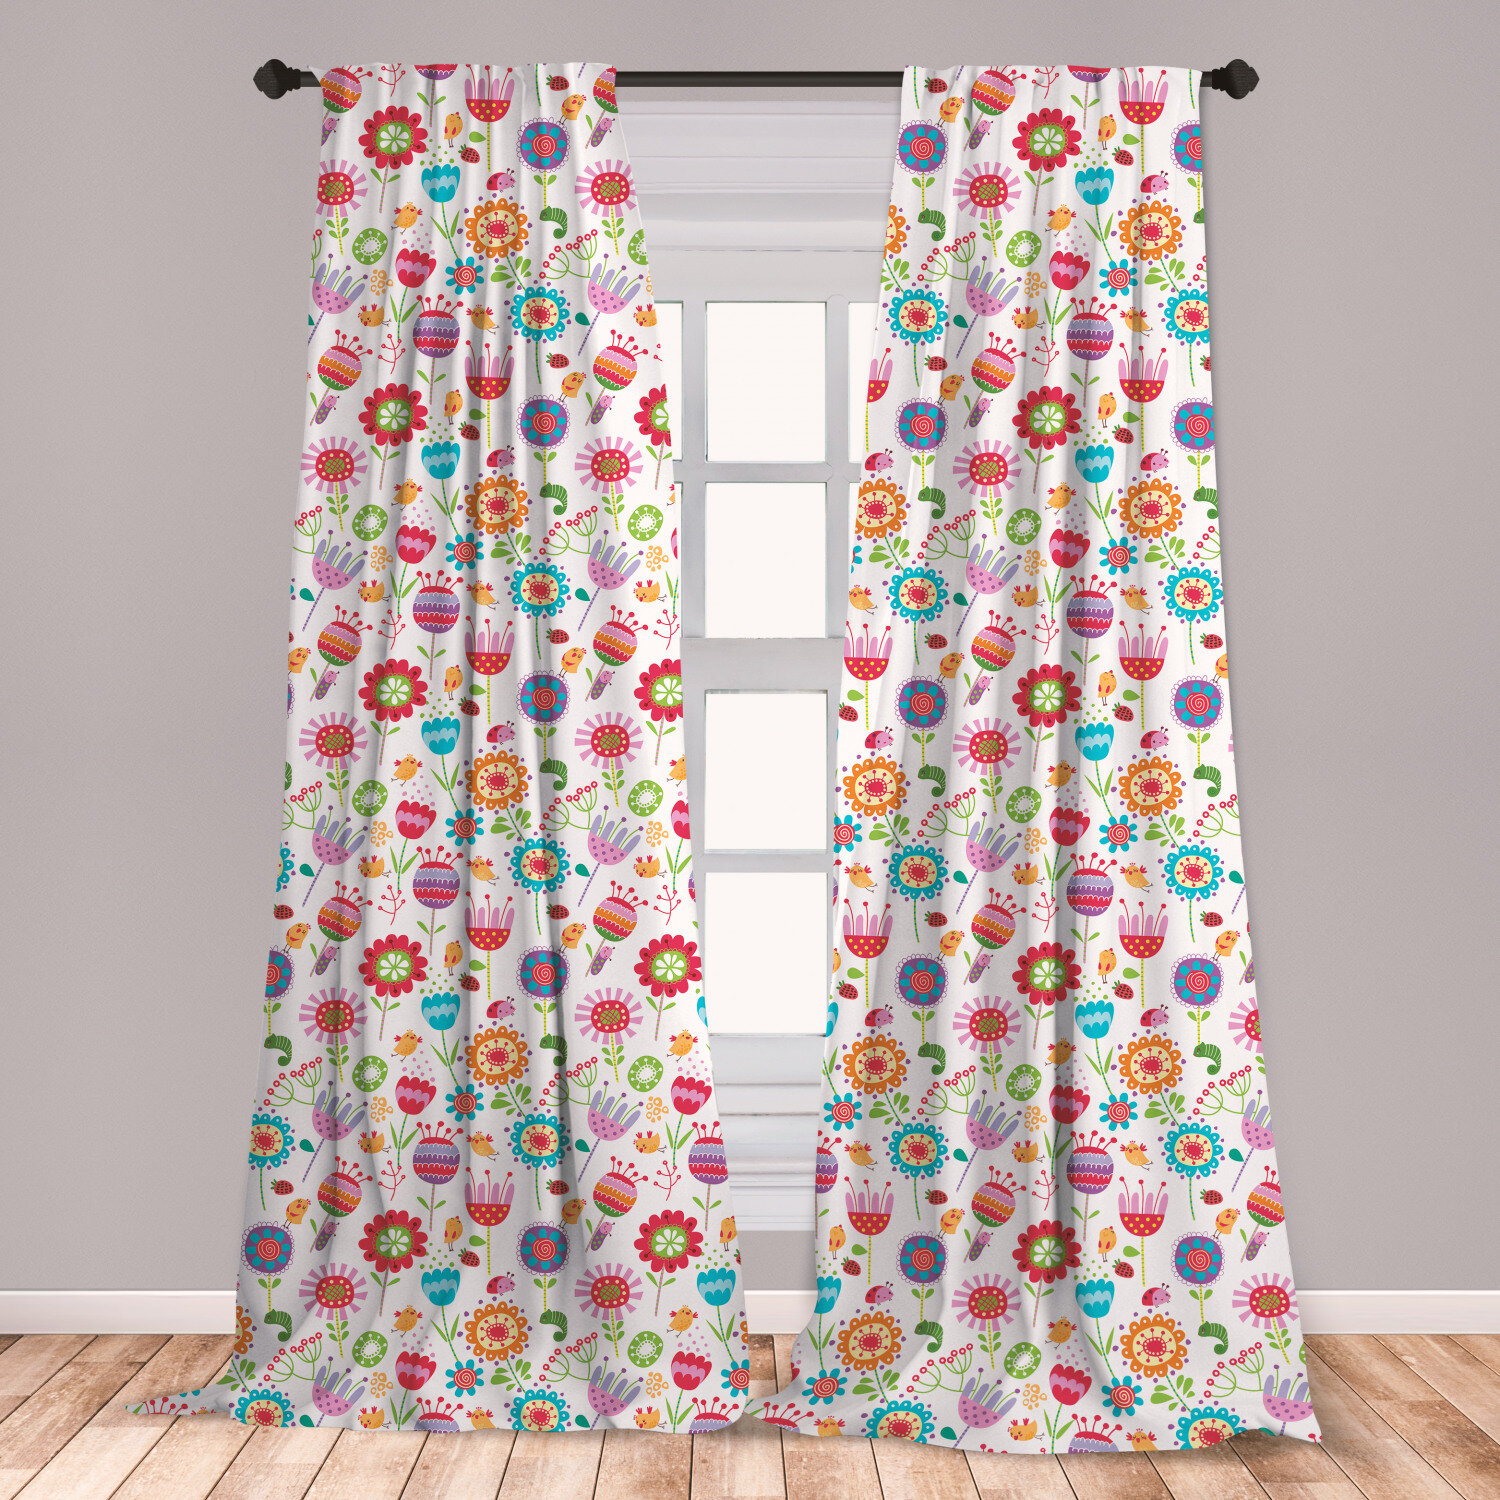 East Urban Home Ambesonne Flower Curtains Playful Garden Colorful Meadow With Blossoming Flowers Strawberries Birds Animals Window Treatments 2 Panel Set For Living Room Bedroom Decor 56 X 63 Multicolor Room Darkening